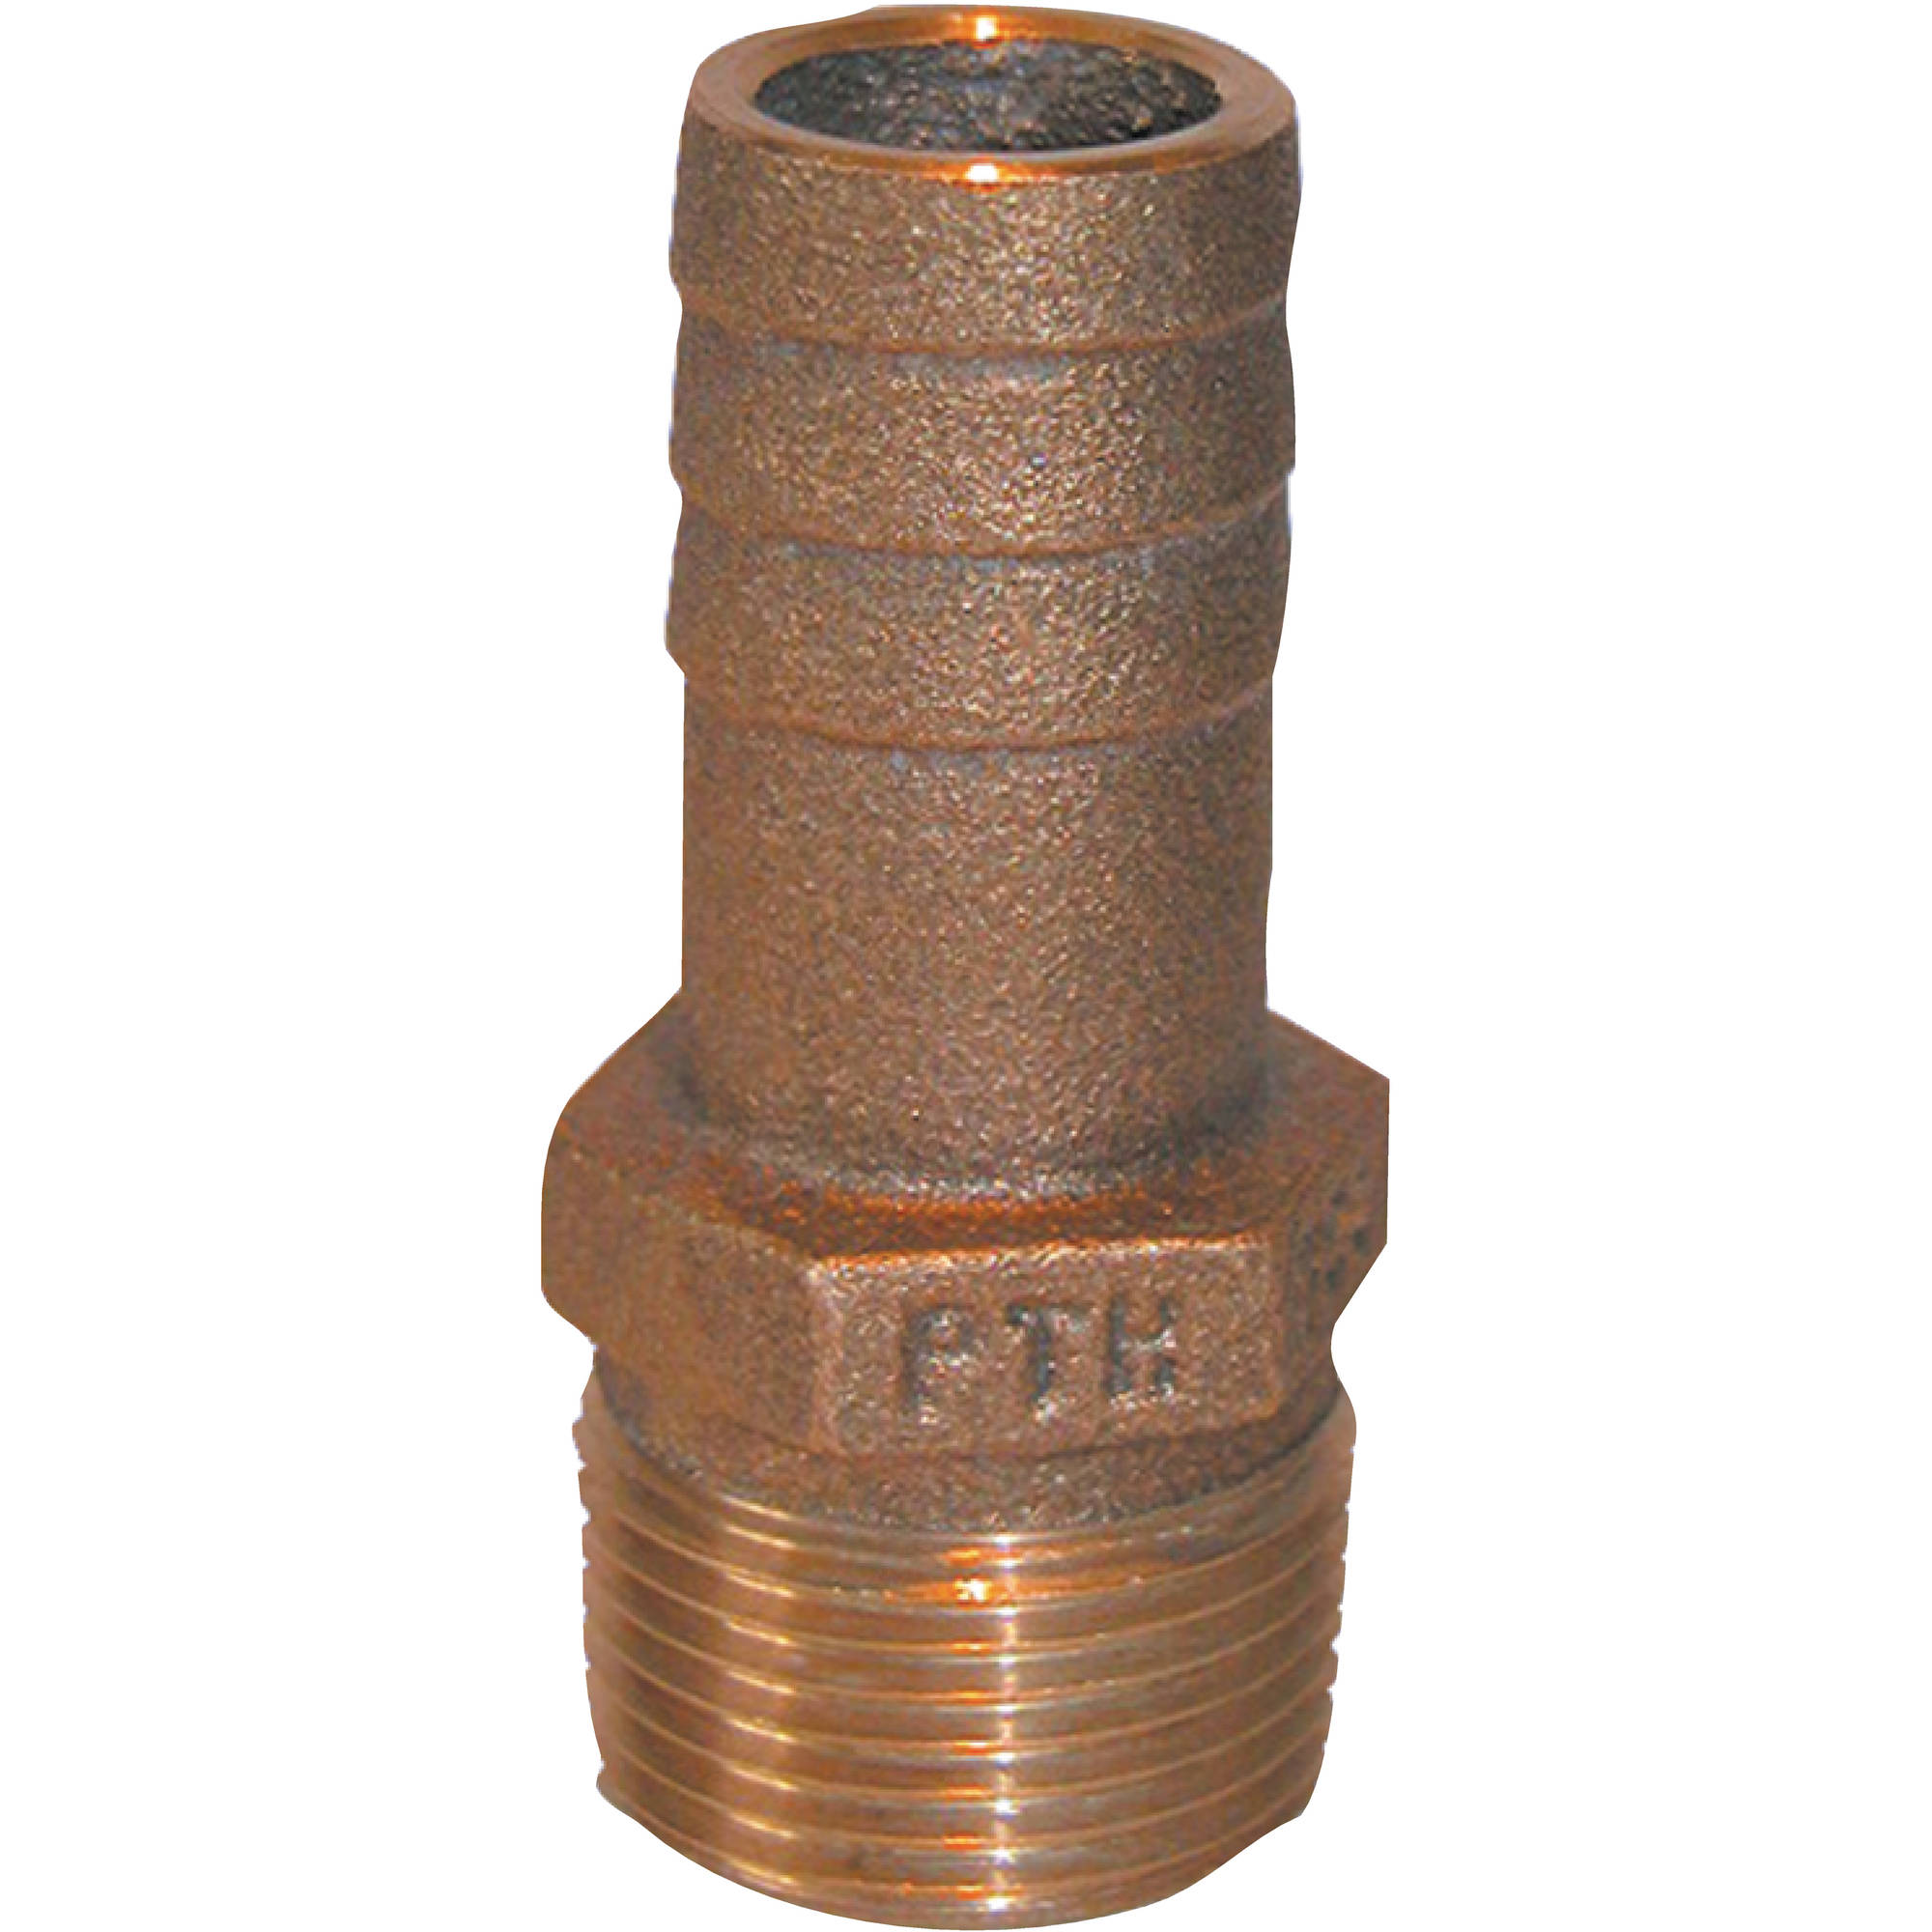 Groco PTH Bronze Standard Flow Pipe-to-Hose Adapter with NPT Thread